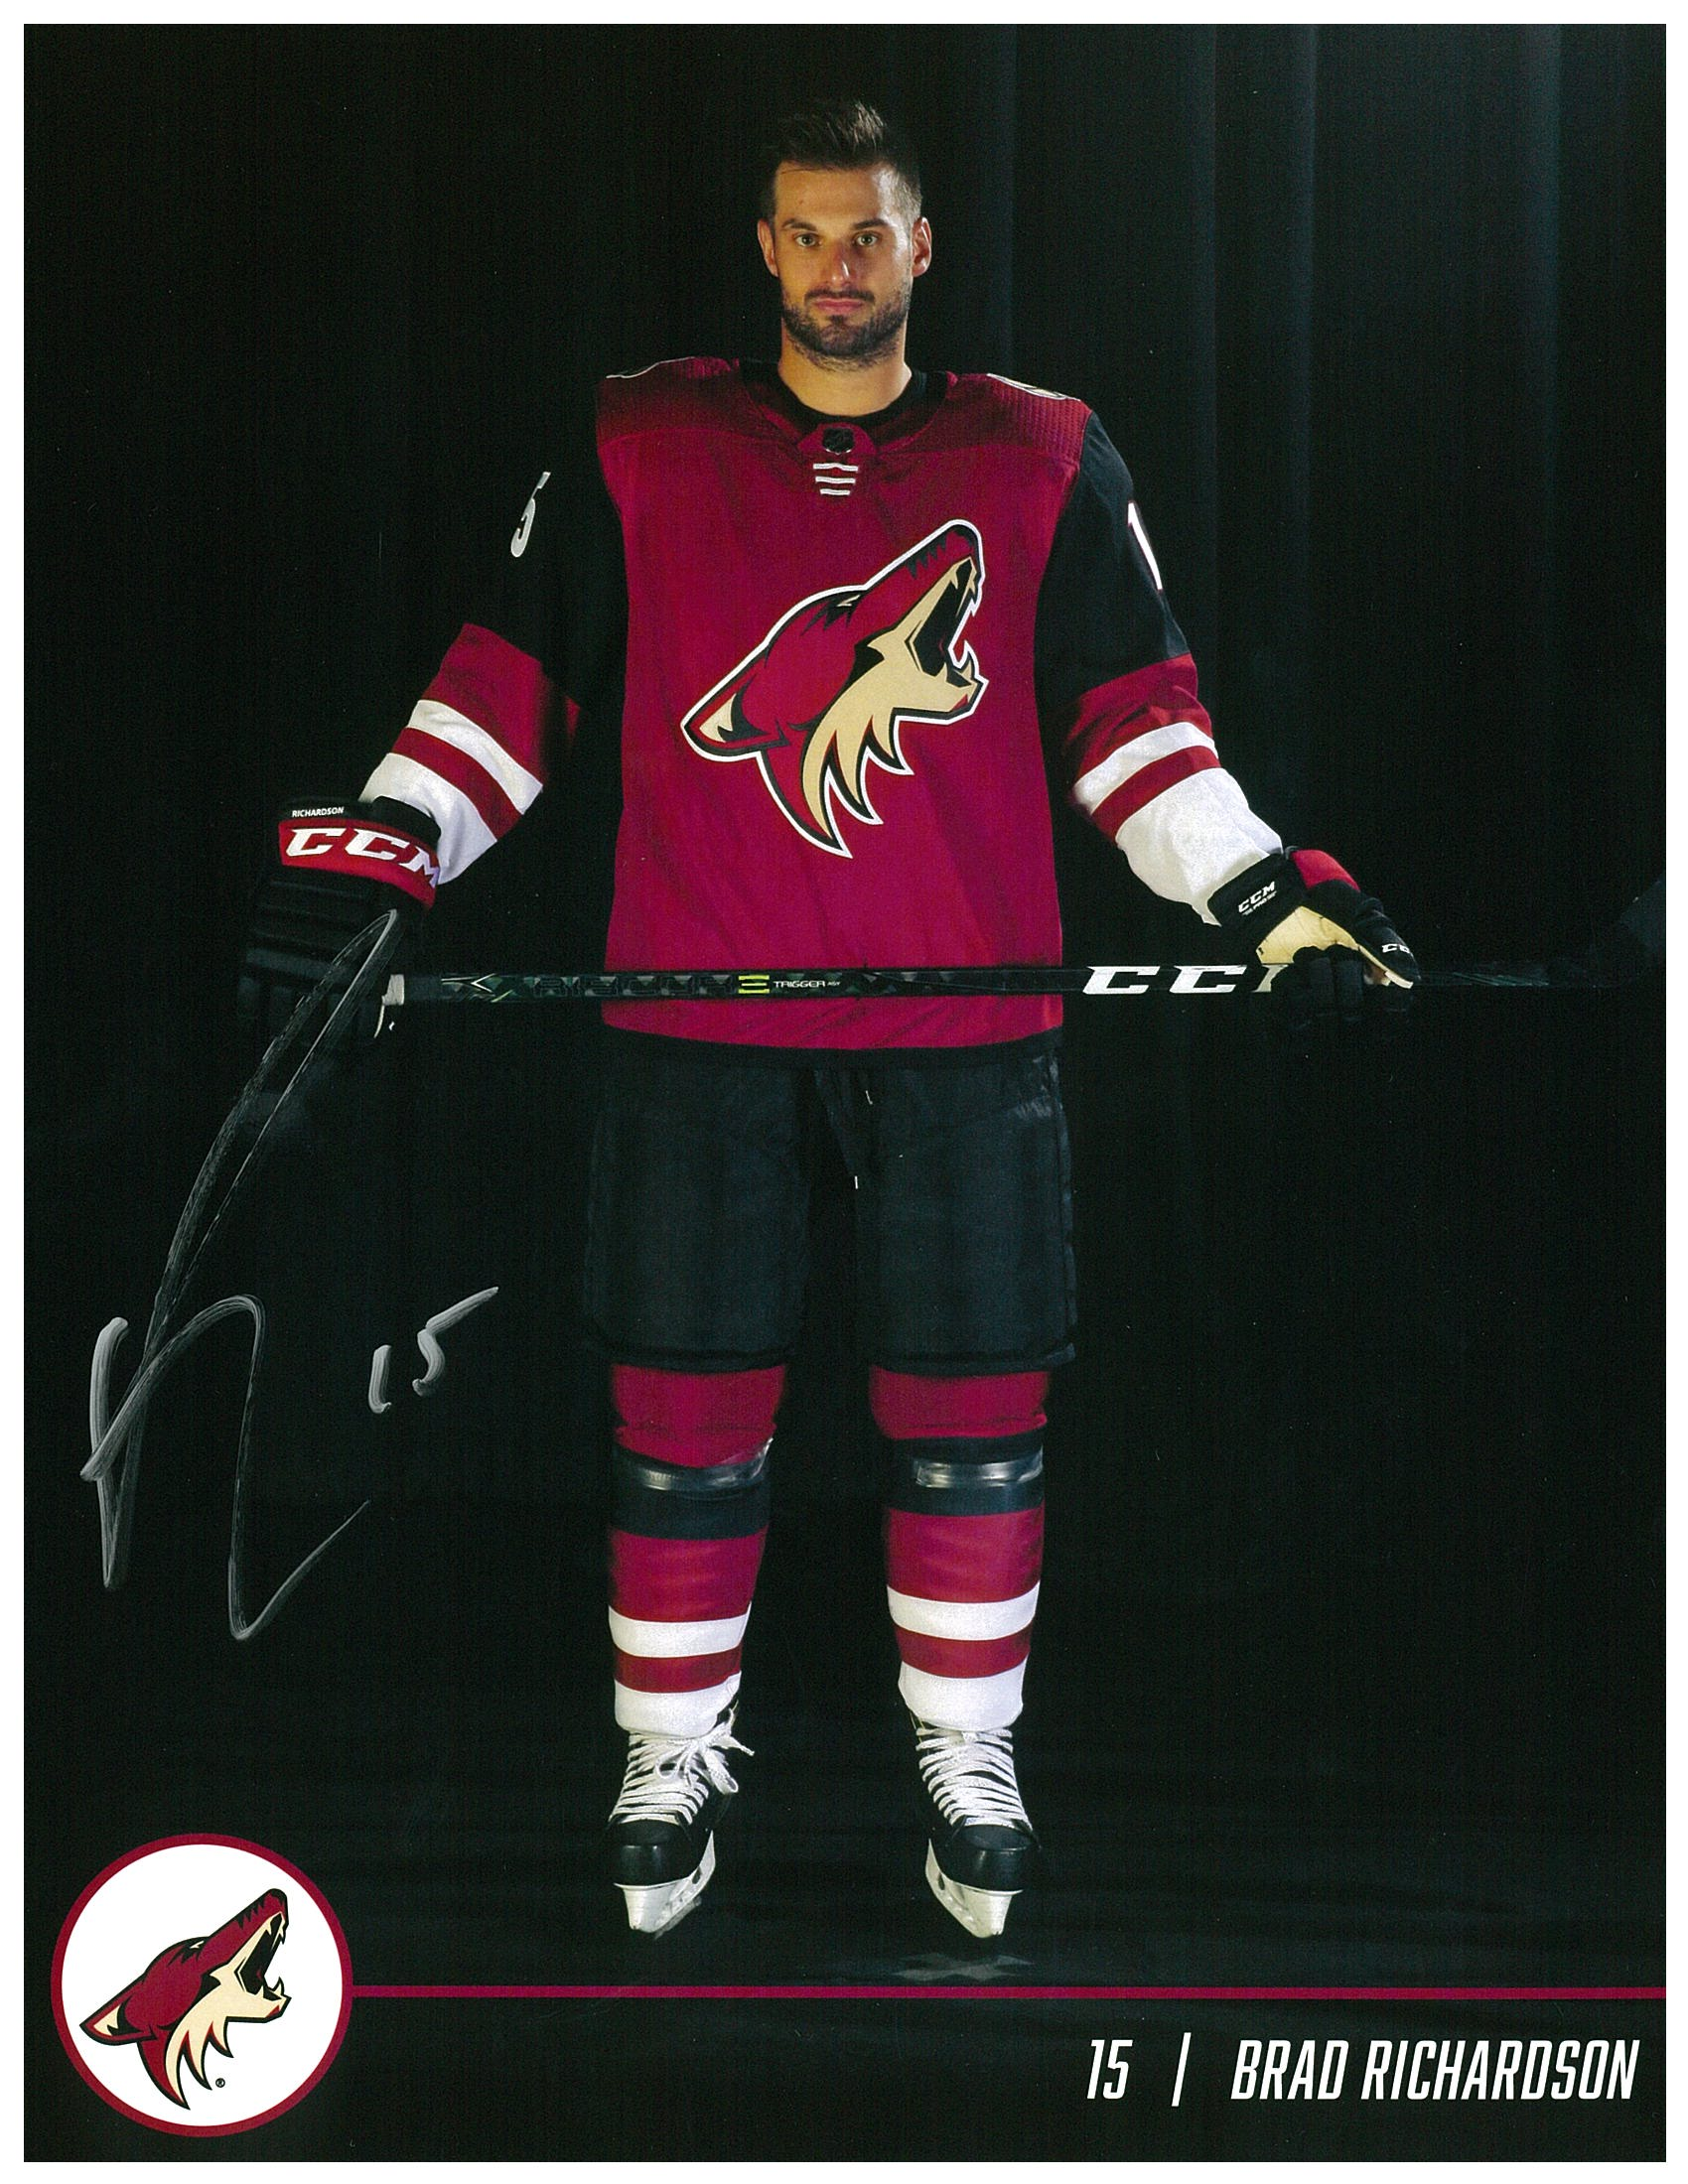 Brad Richardson_Autographed Arizona Coyotes Photo.jpg